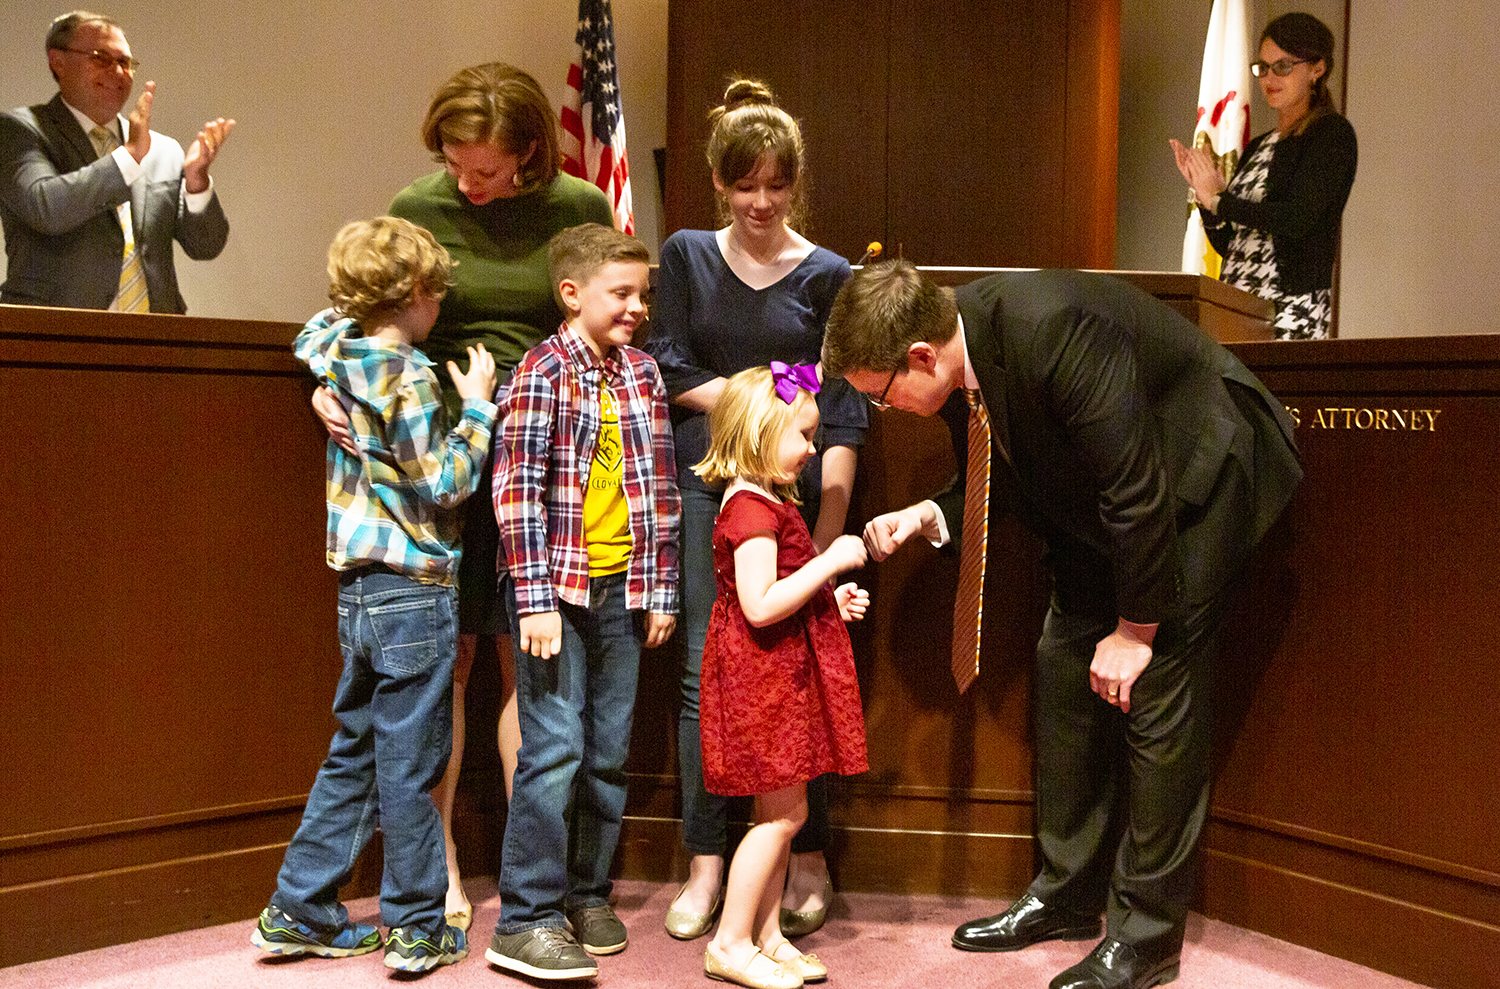 Dan Wright fist bumps his youngest daughter, Margot, 4, after he was sworn in as the new Sangamon County State's Attorney Tuesday, Oct. 30, 2018 in the Sangamon County Board Chambers in Springfield, Ill. Also with Wright are his wife, Emily, sons Henry, Jack and daughter, Anna Claire. [Rich Saal/The State Journal-Register]